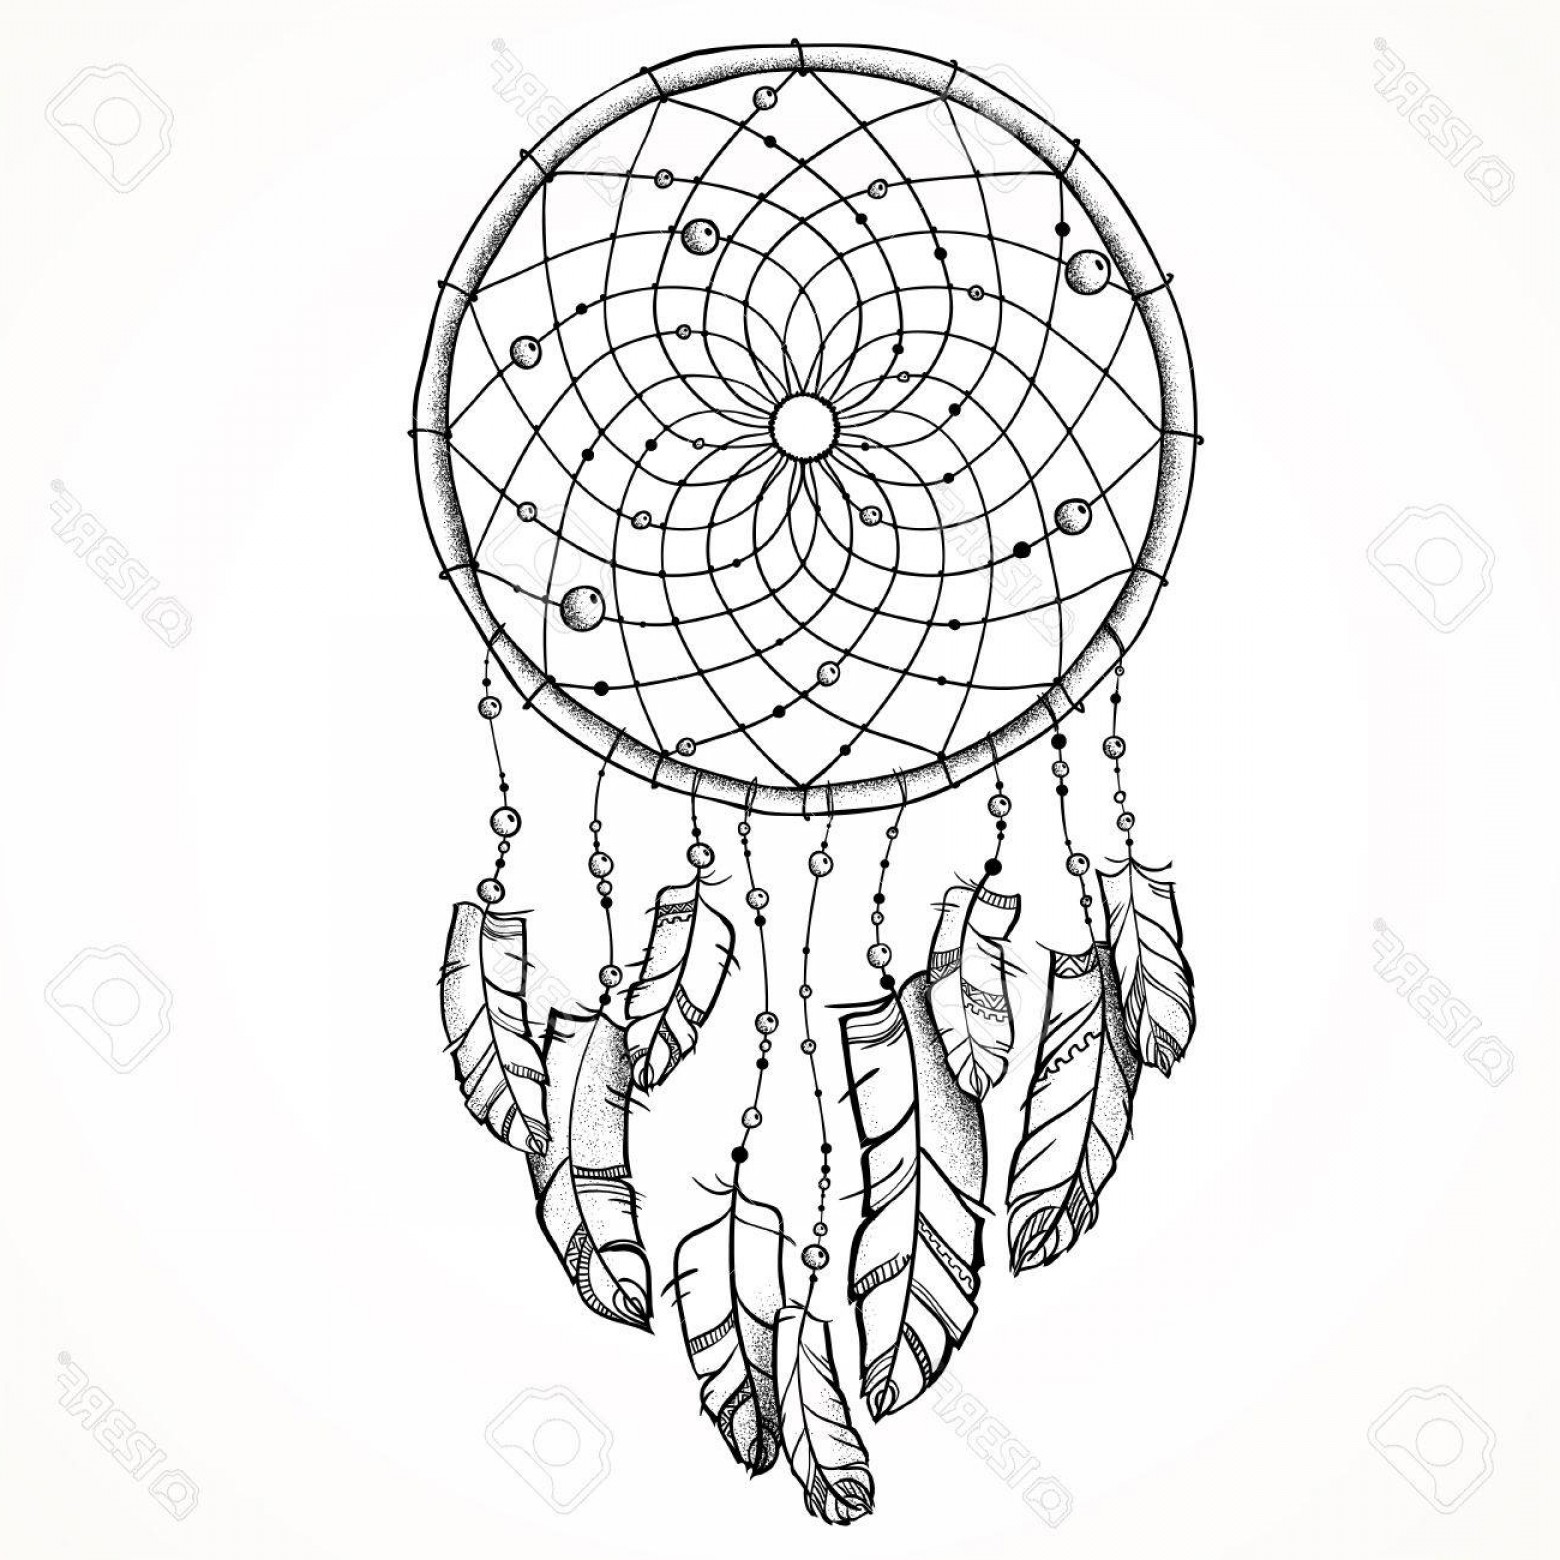 Dreamcatcher Tattoo Vector: Photostock Vector Vector Illustration Ethnic Totem Wolf And Dreamcatcher Doodle Tattoo